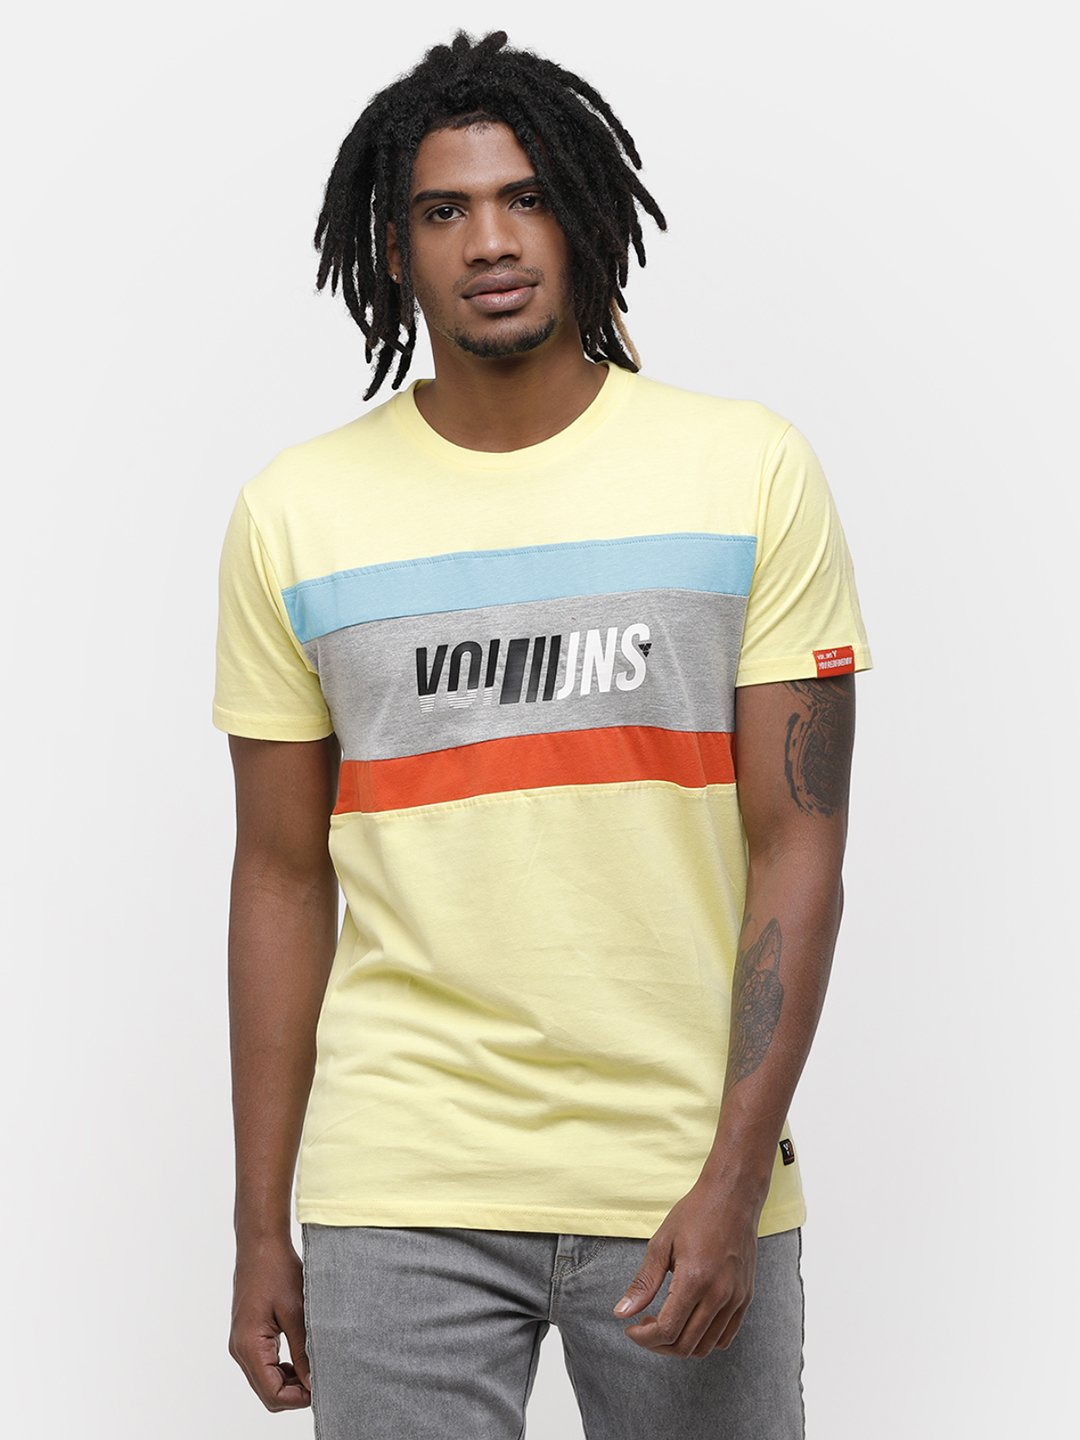 Voi Jeans | Yellow T-Shirts (VOTS1423)